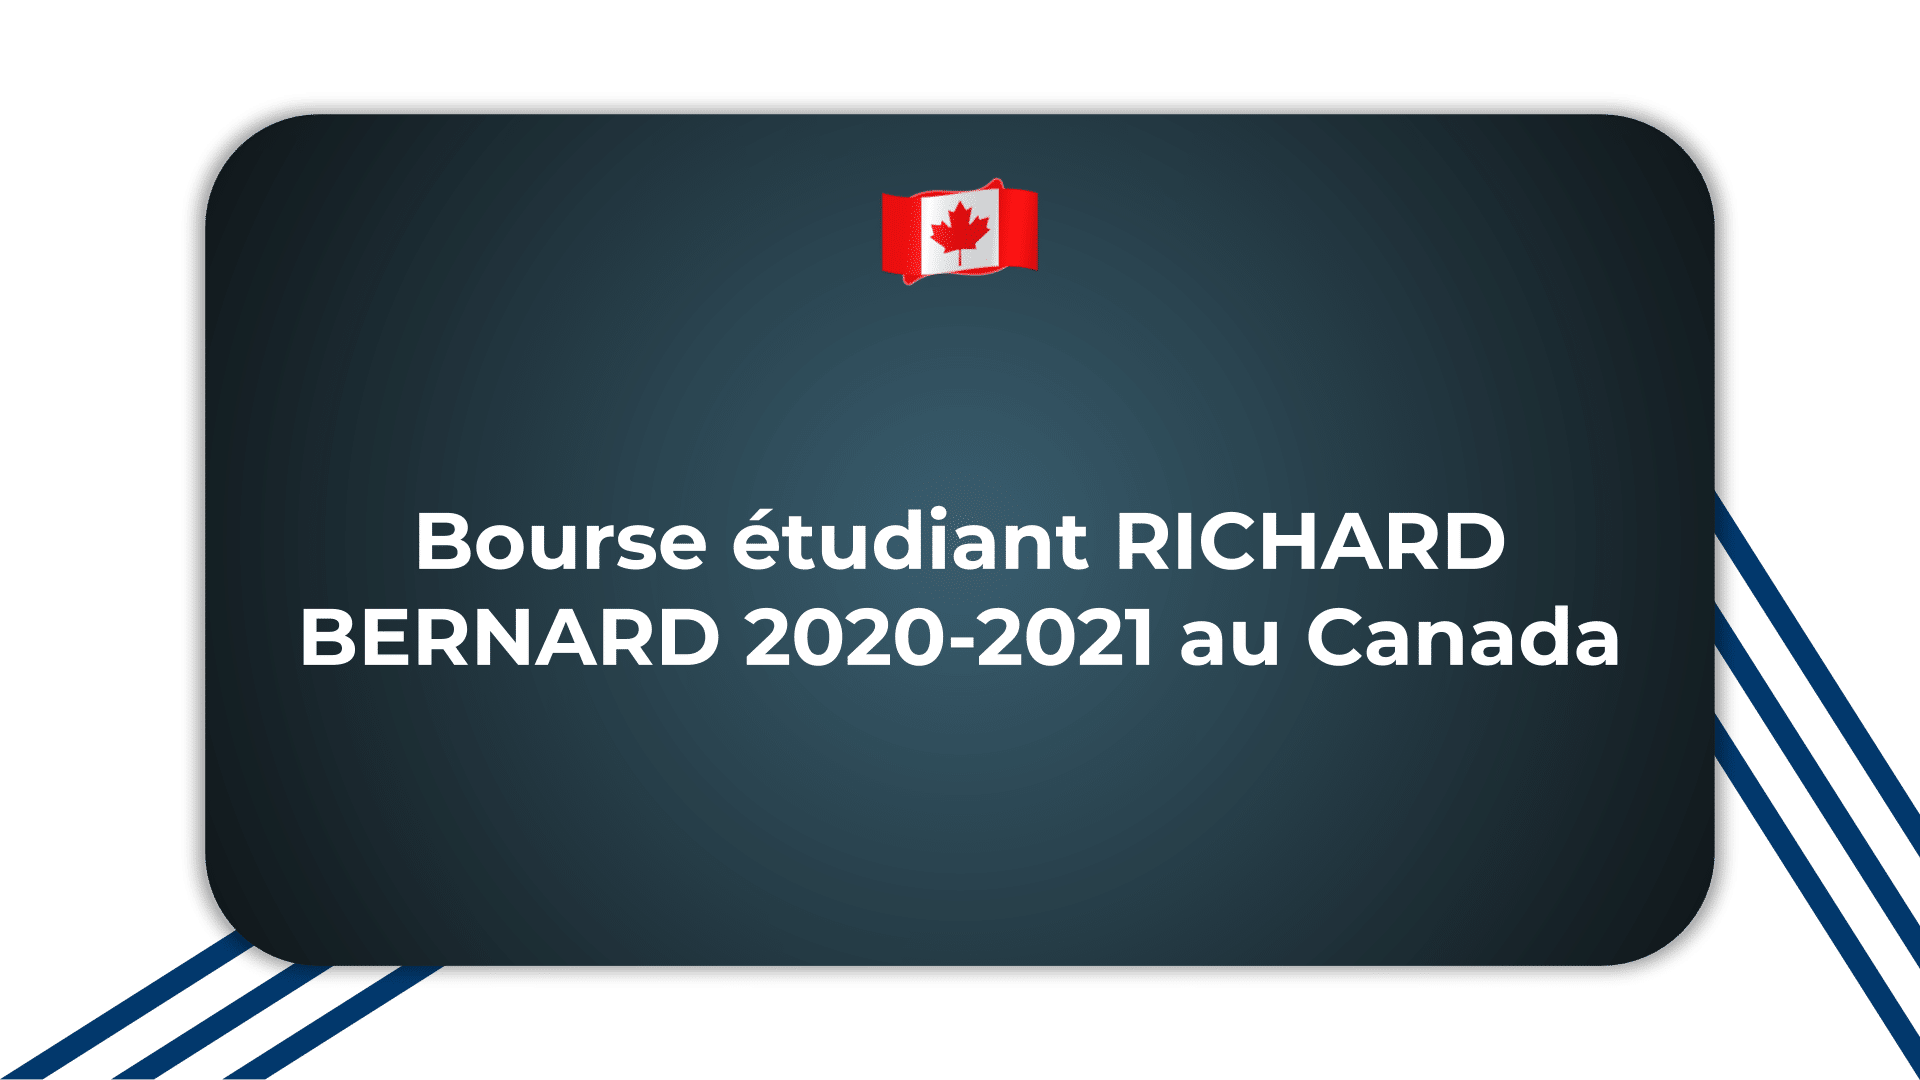 Bourse étudiant RICHARD BERNARD